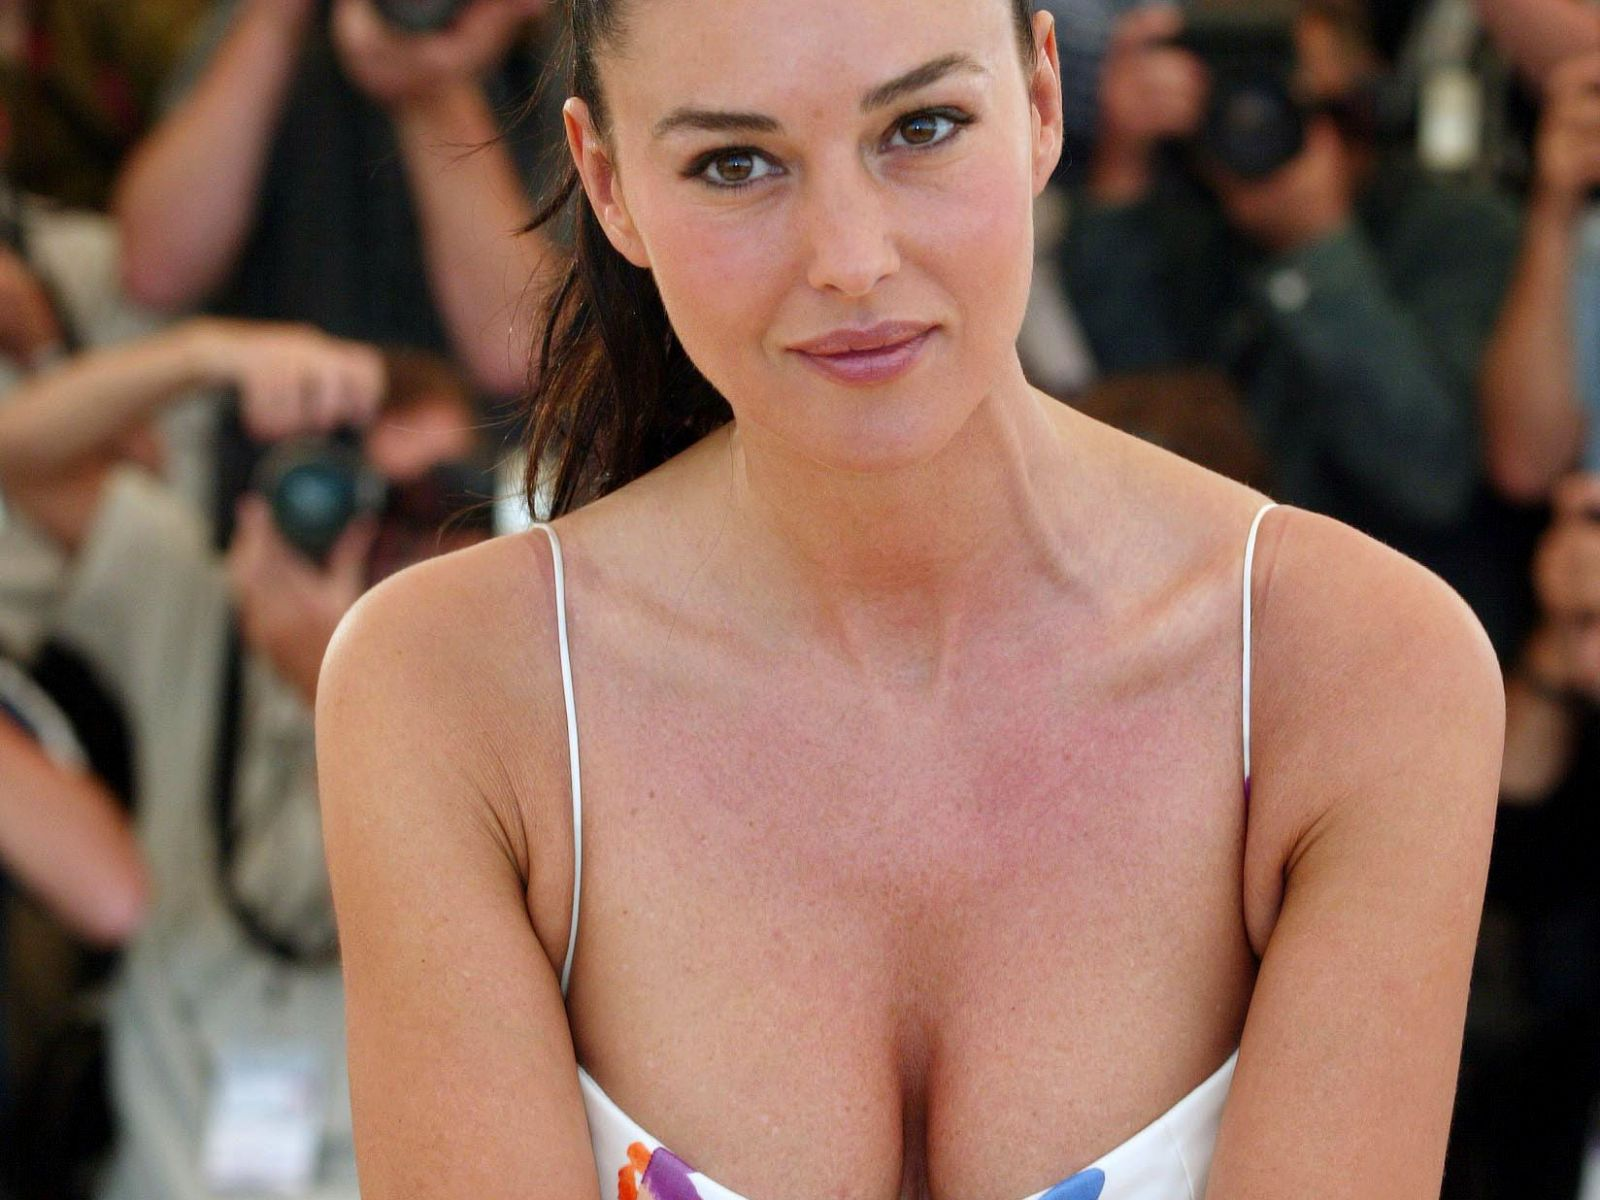 Monica Bellucci - Wikipedia, the free encyclopedia - Holiday and